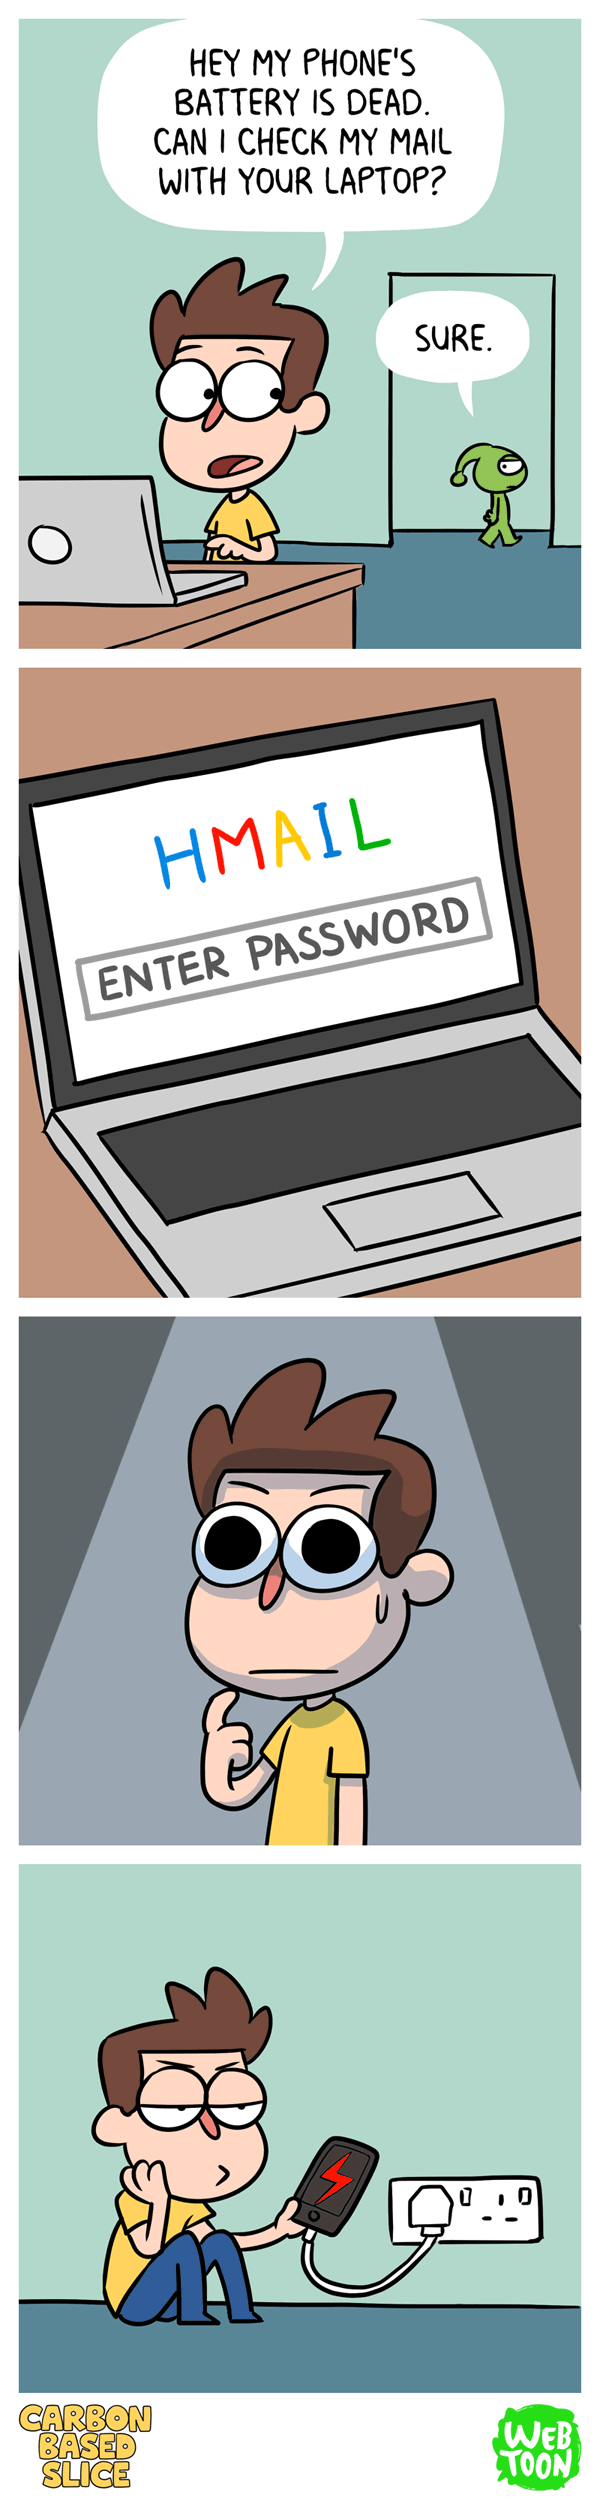 email passwords web comics - 8759789312